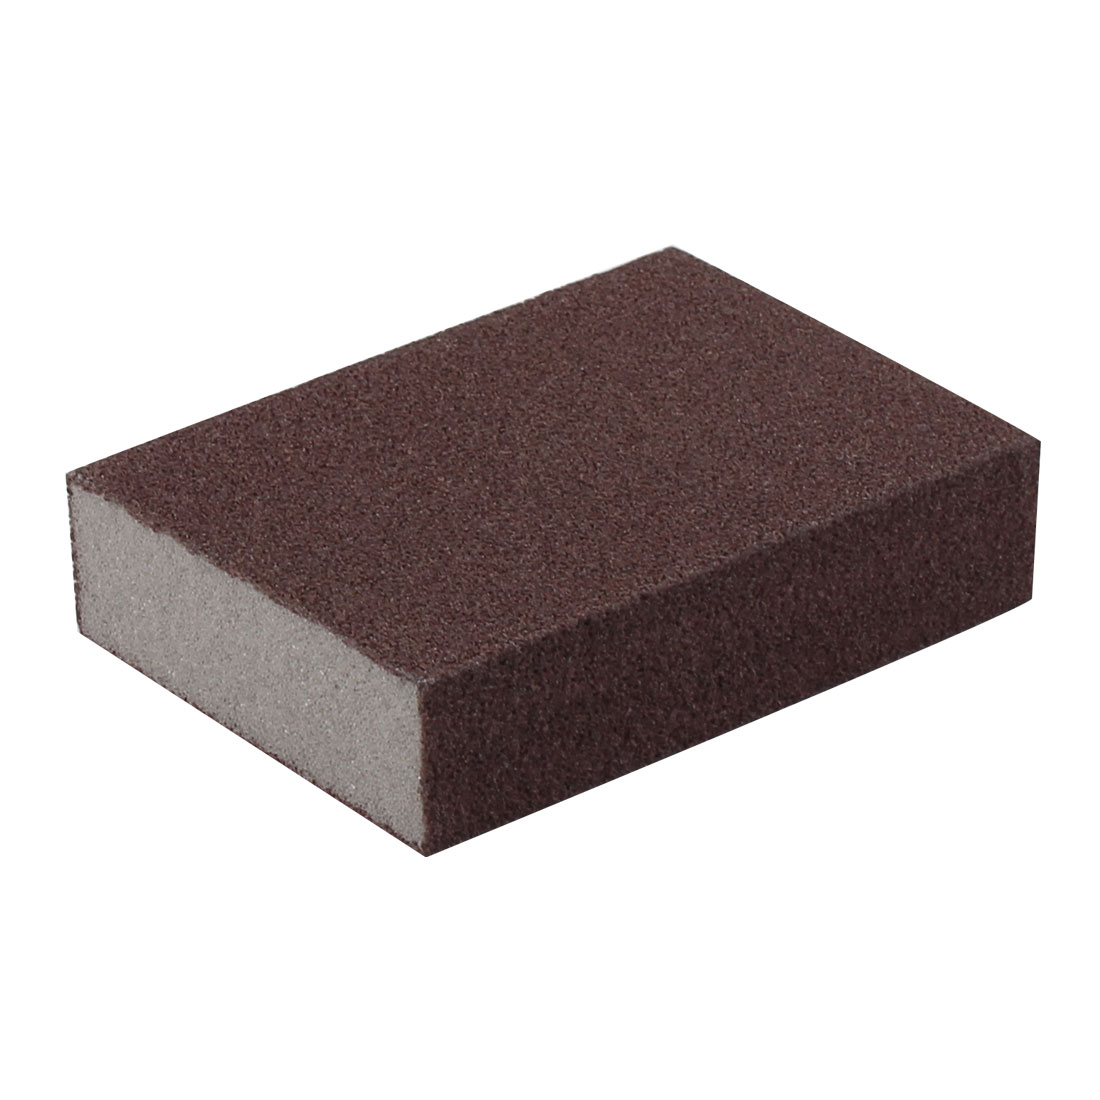 Sponge Kitchen Rub Rust Decontamination Cleaning Tool Scrub Pad Coffee Color - image 2 of 2